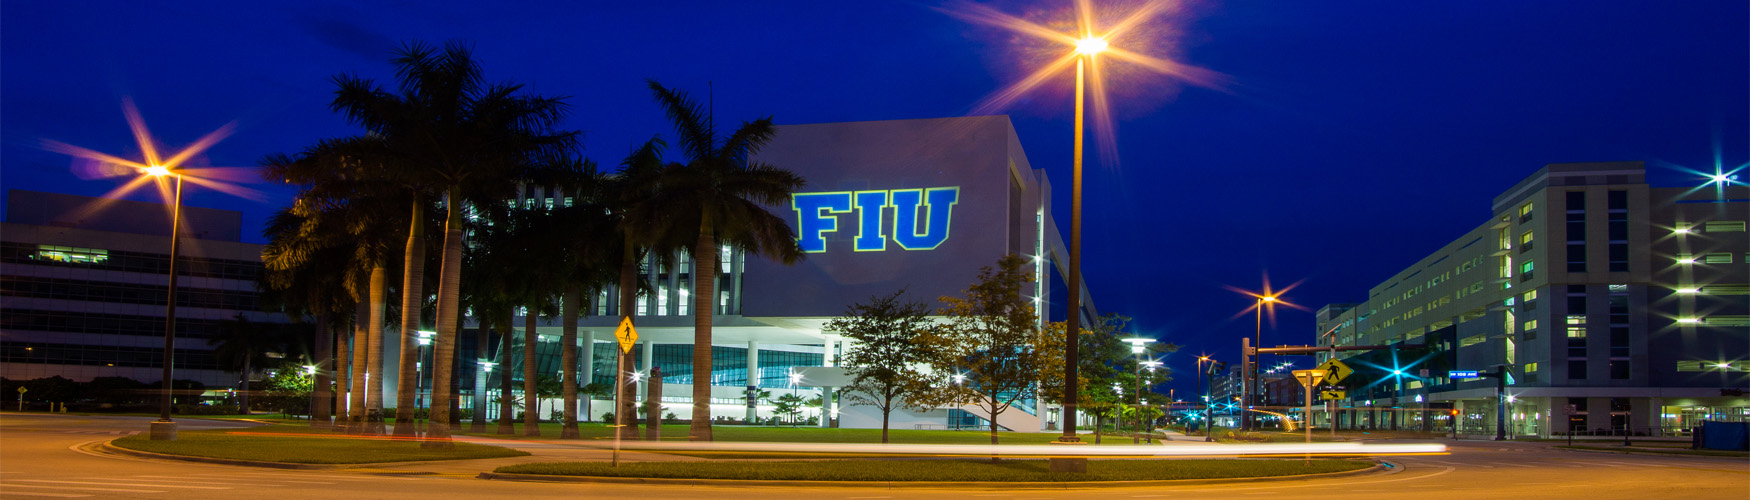 Building at night with FIU light projection